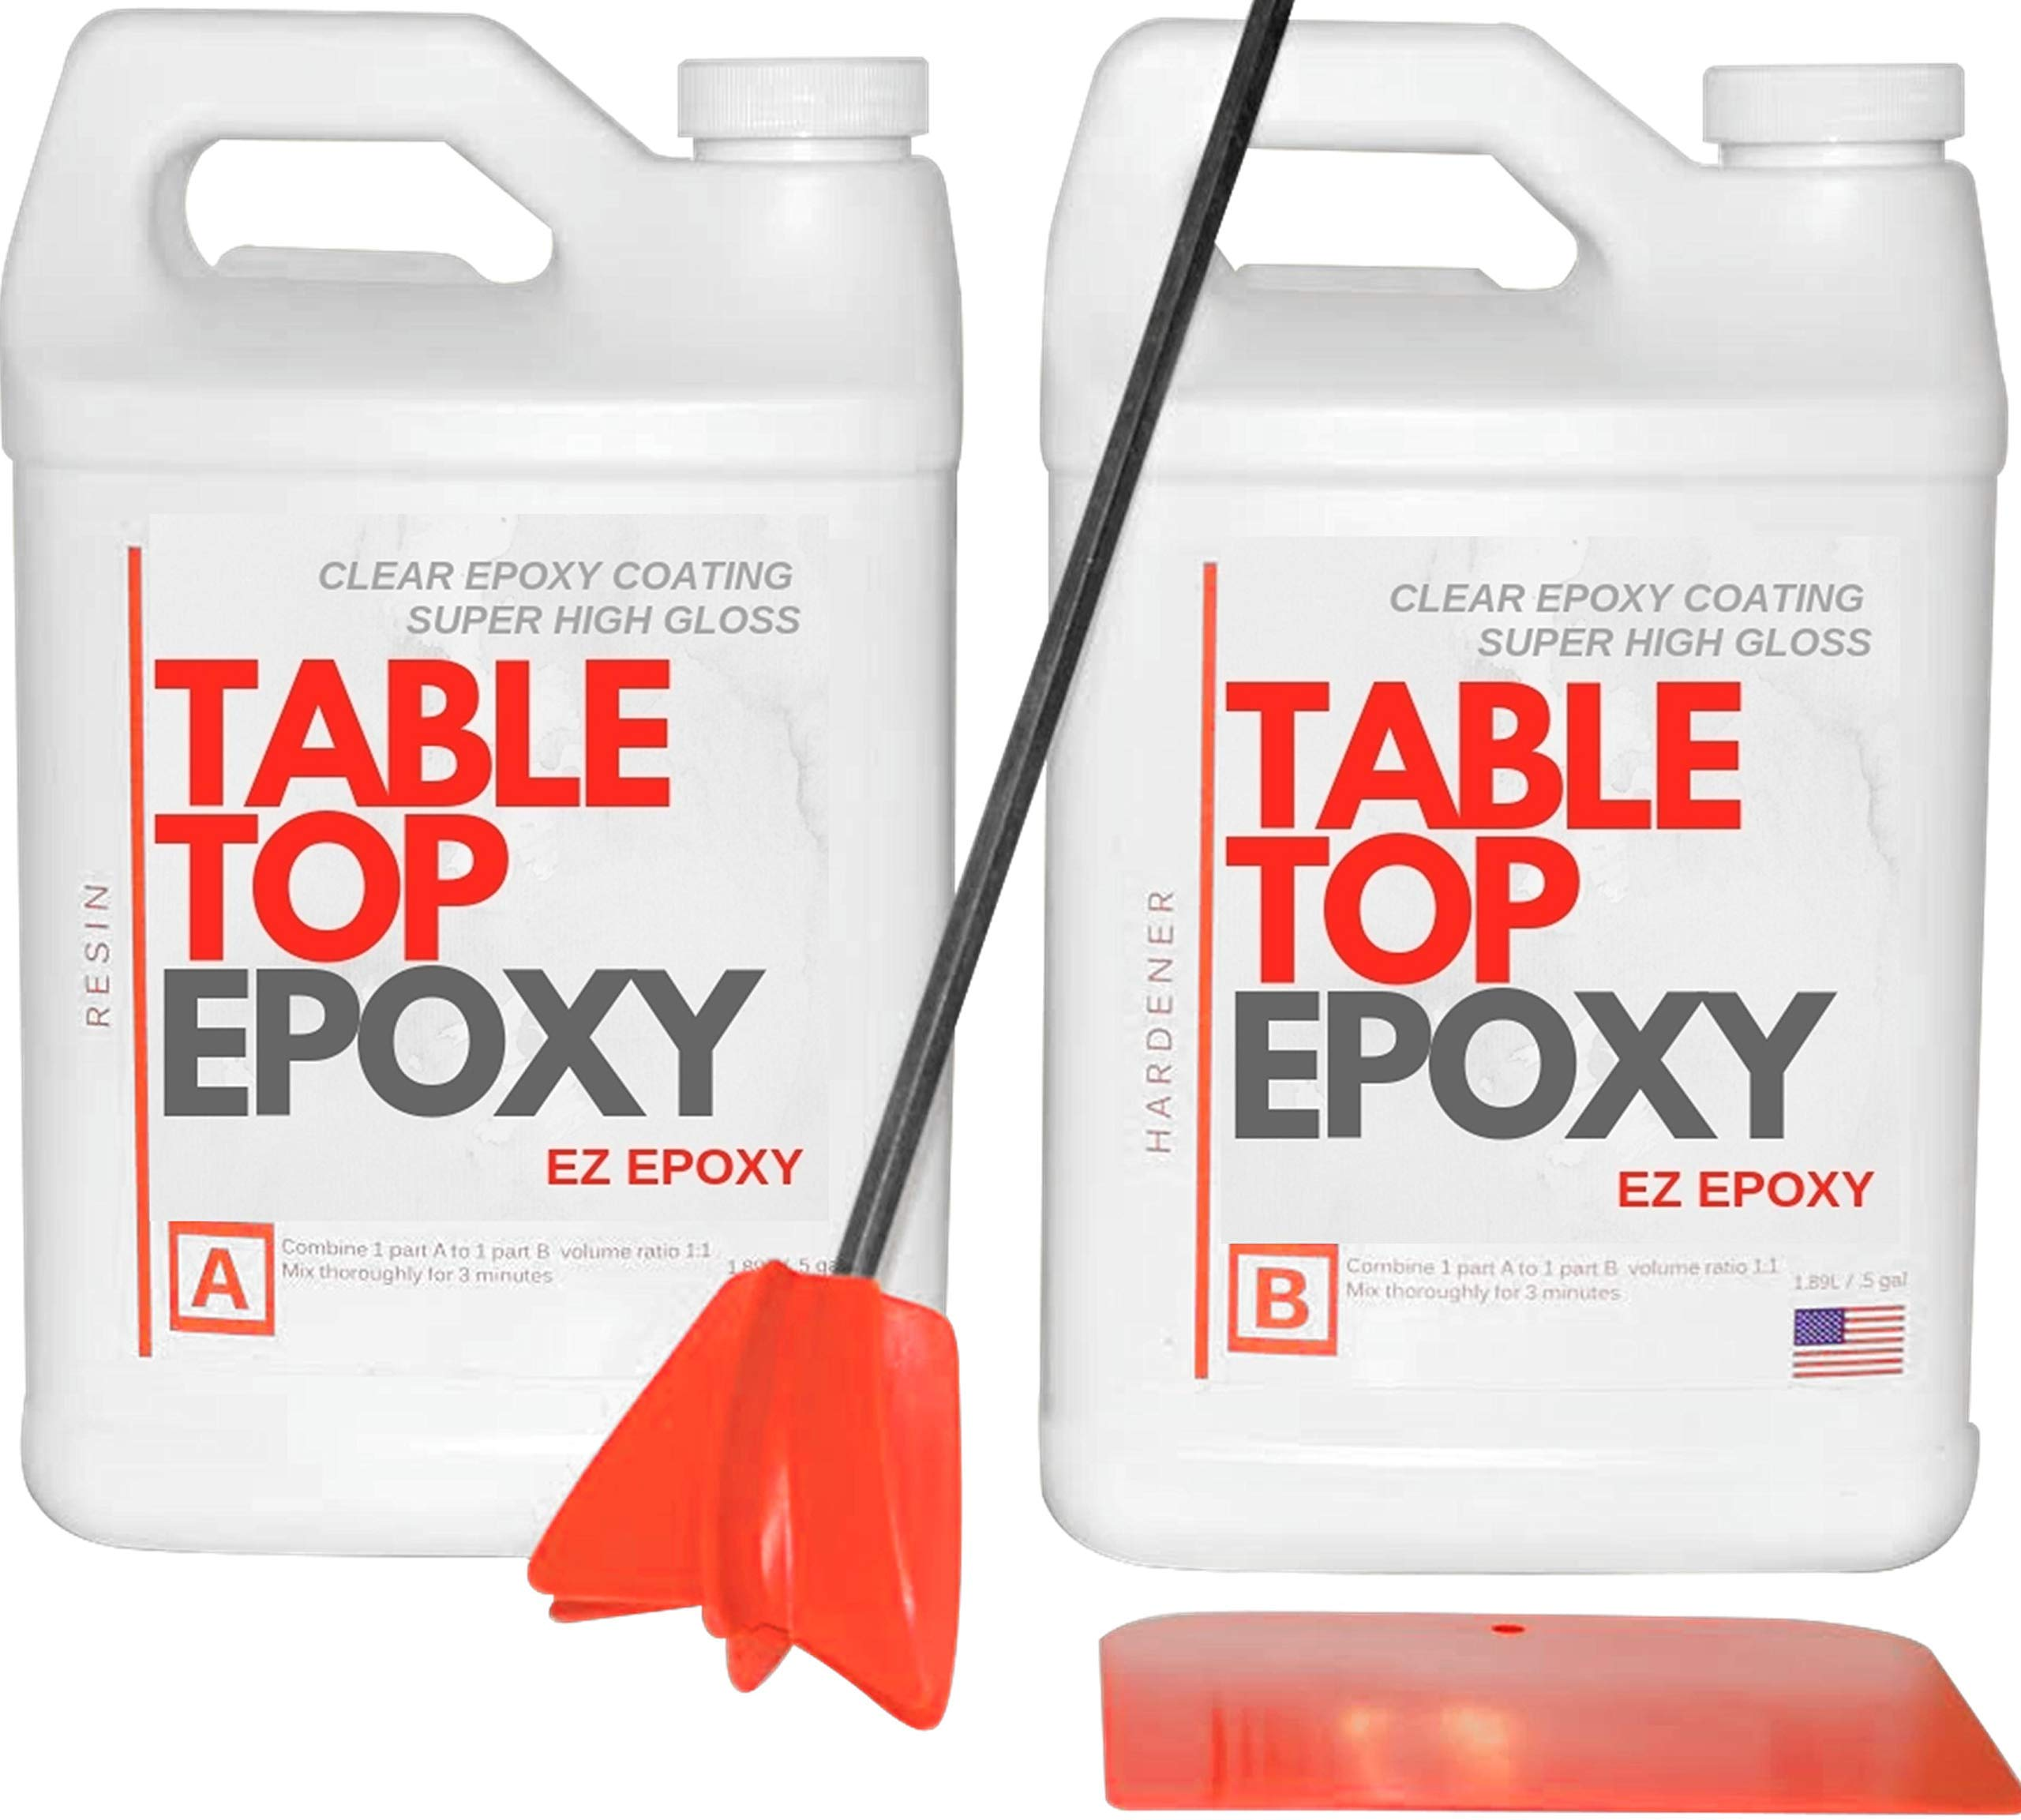 Crystal Clear Epoxy Resin -Coating for Tabletops, Bar Tops, Floors & Crafting - 2 Part Epoxy Resin – UV Protection & NO VOC – High-Gloss & Low-Odor - 1 Gallon Epoxy kit